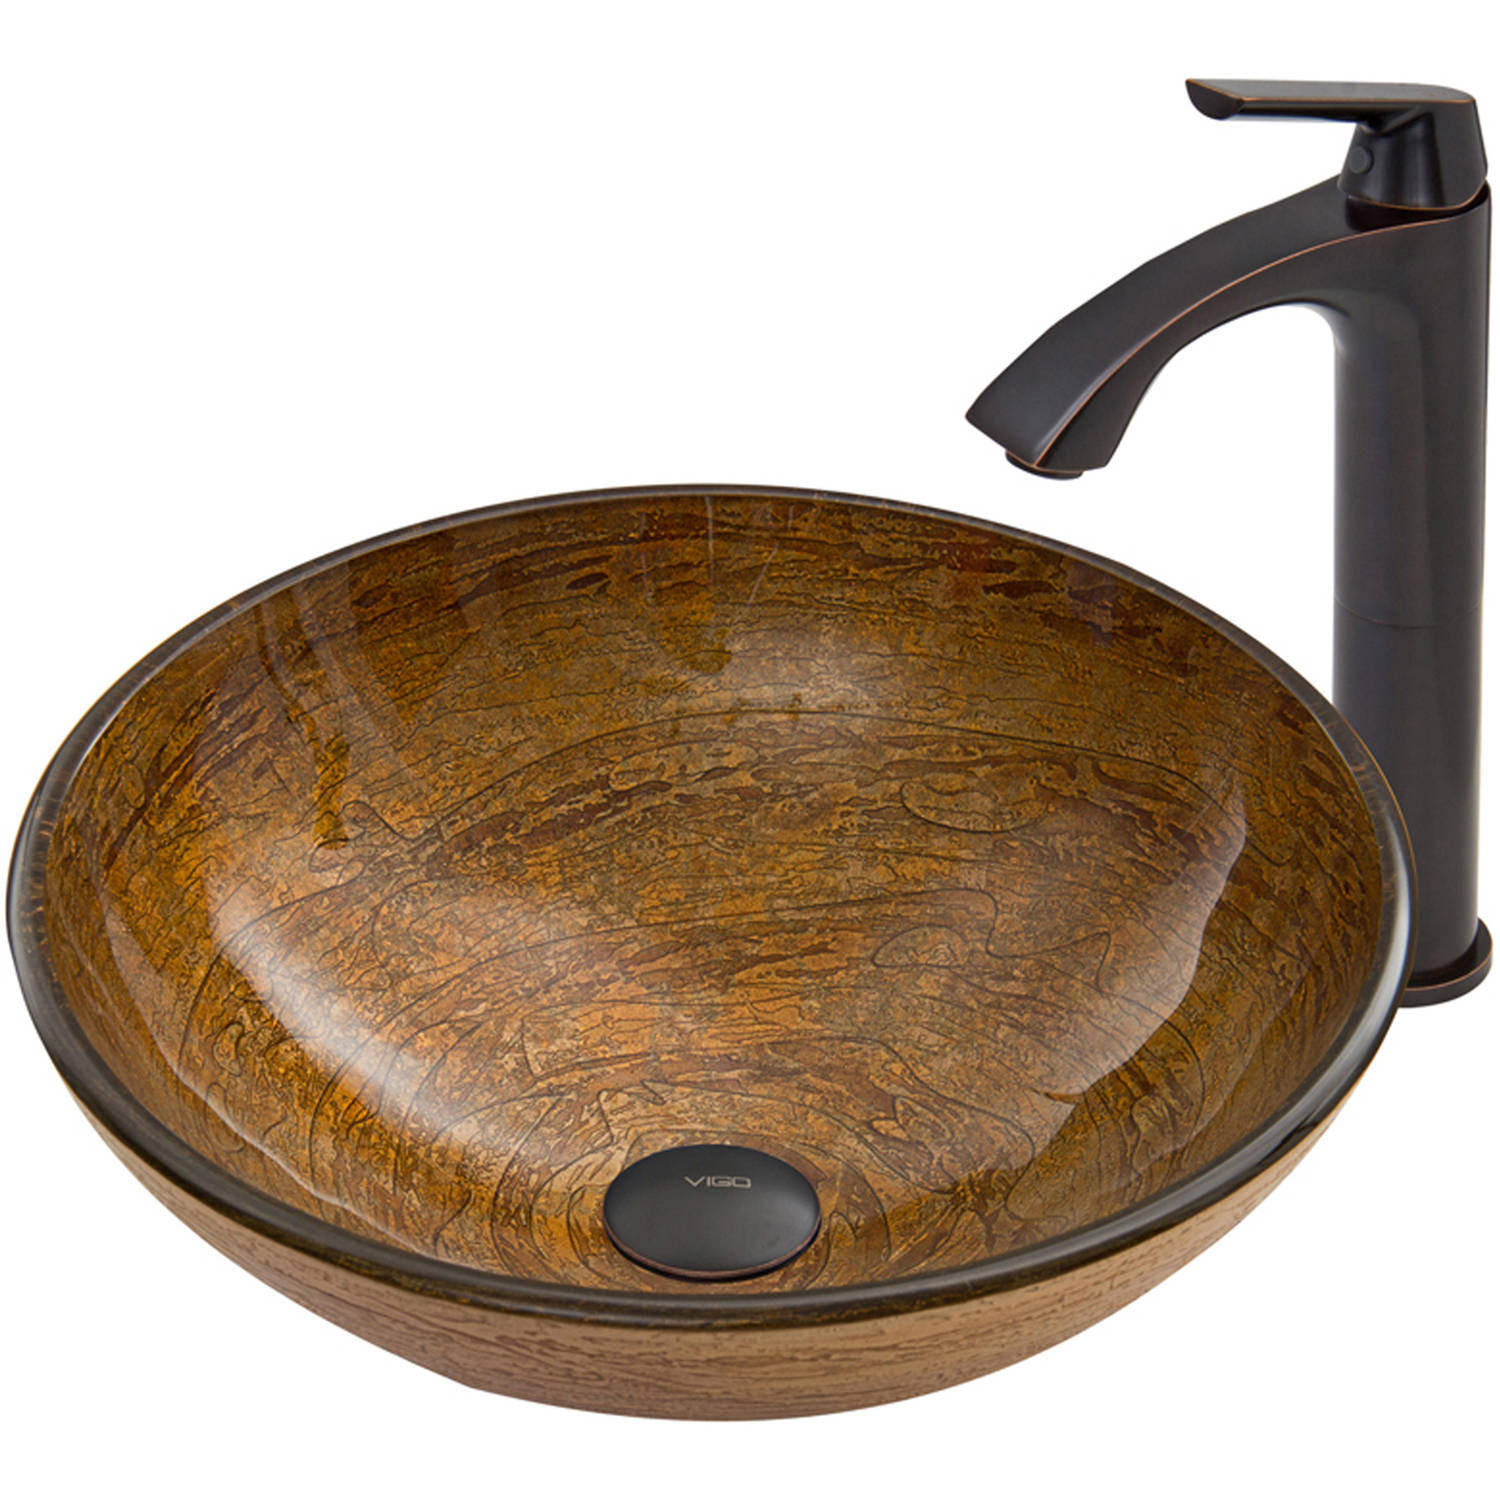 VIGO Cappuccino Swirl Glass Vessel Sink and Linus Faucet Set, Antique Rubbed Bronze